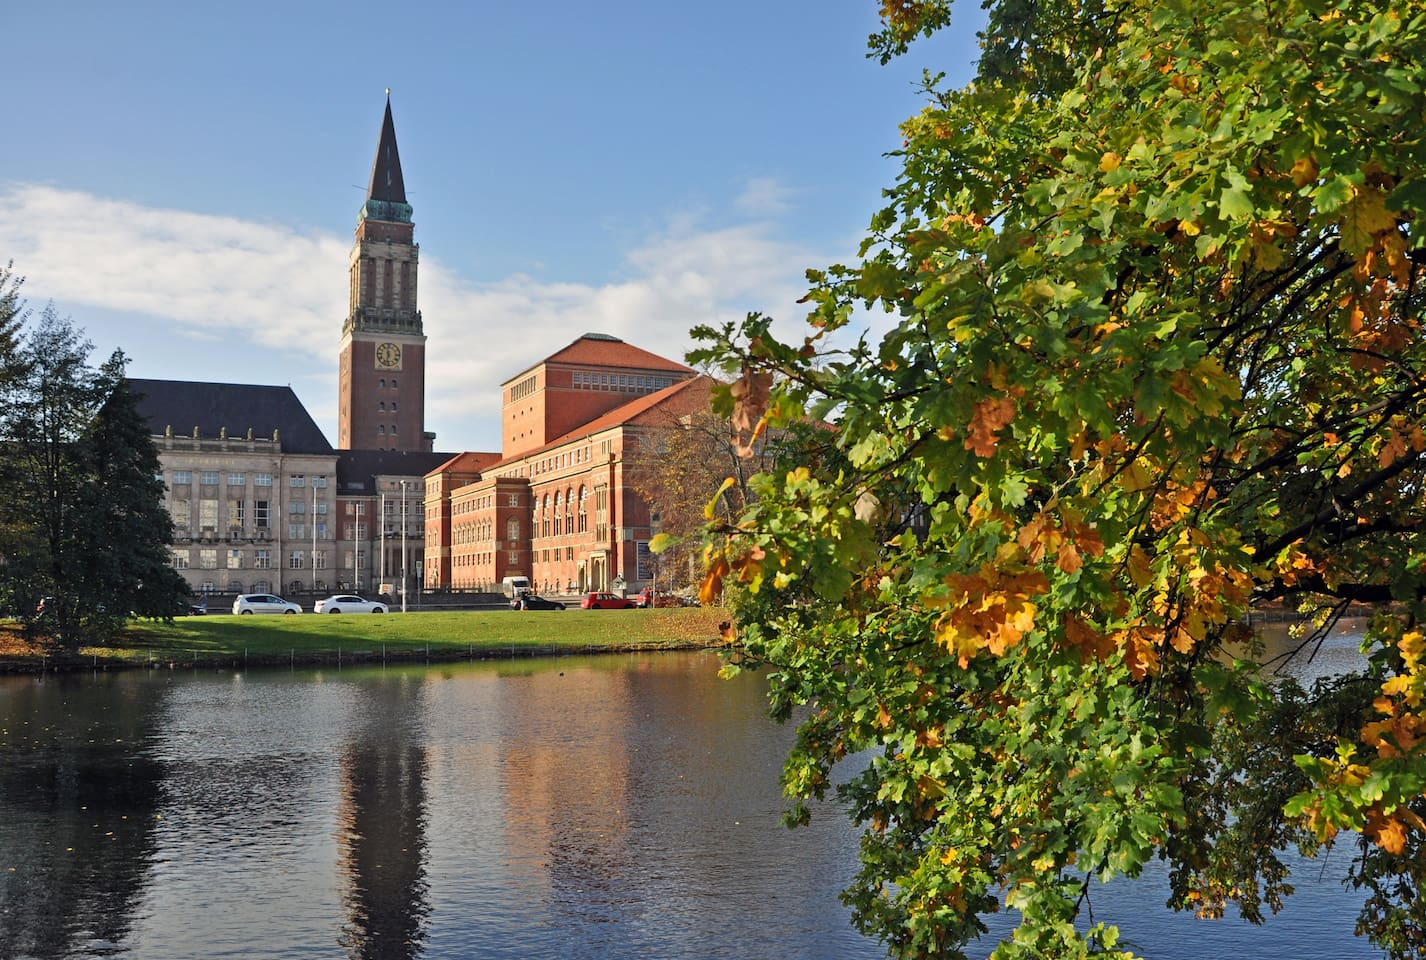 Walk to Central station, town hall, shopping mall, bars, restaurants, Ostseekay, Sparkassen Arena, Port of Kiel, Oslokay & local farmers market within a couple of minutes. Location, location, location. this brand new apartment is in the heart of Kiel